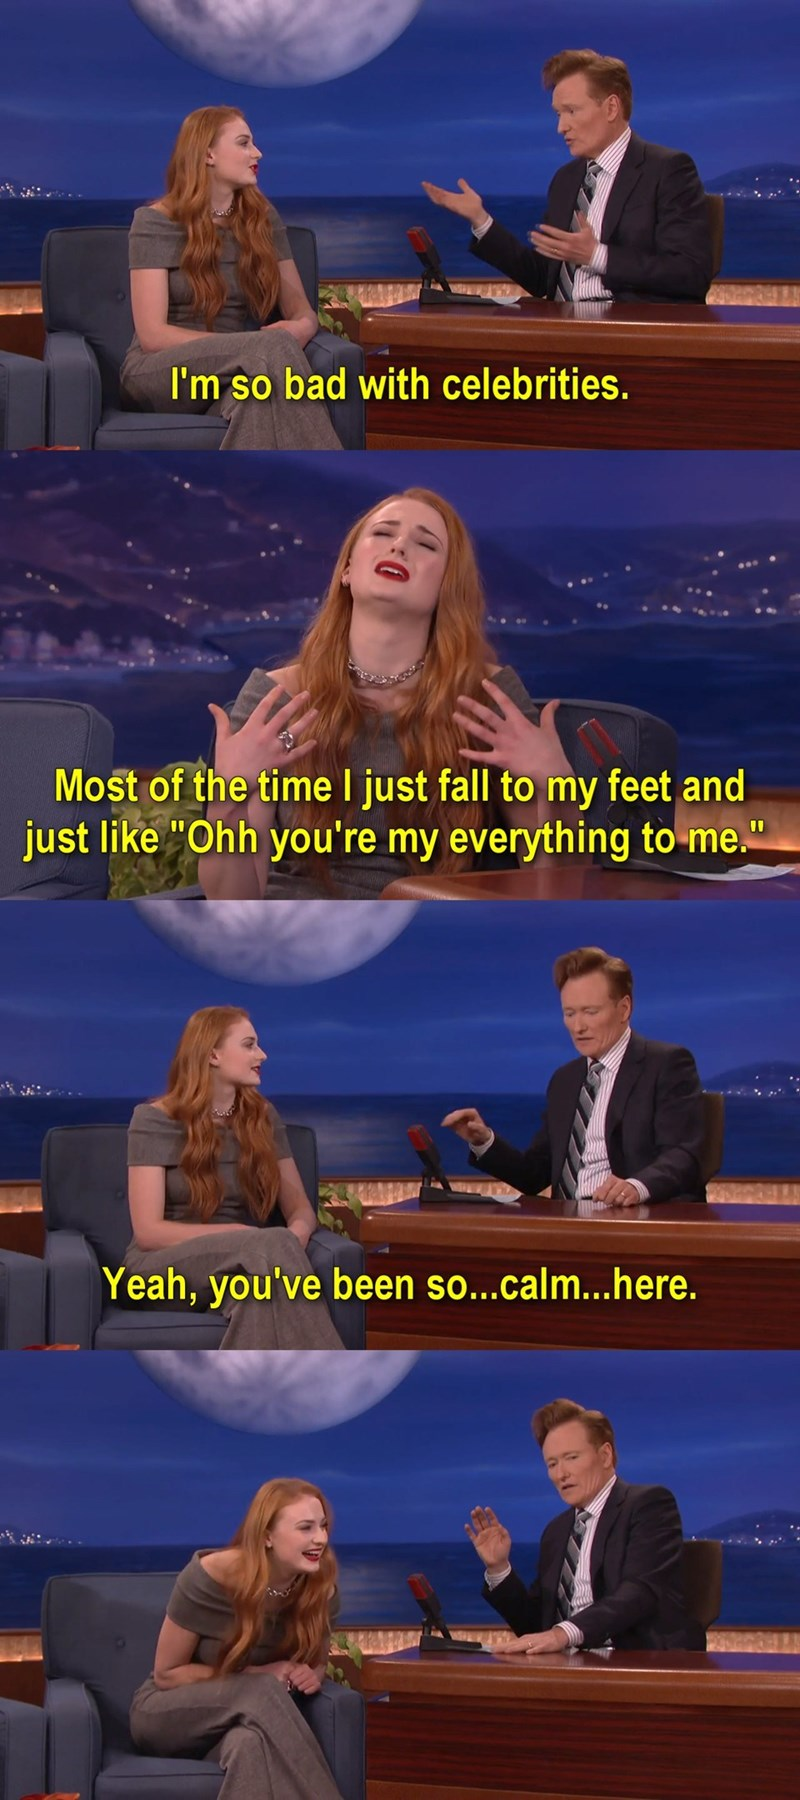 conan-o-brien-game-of-thrones-sansa-stark-video